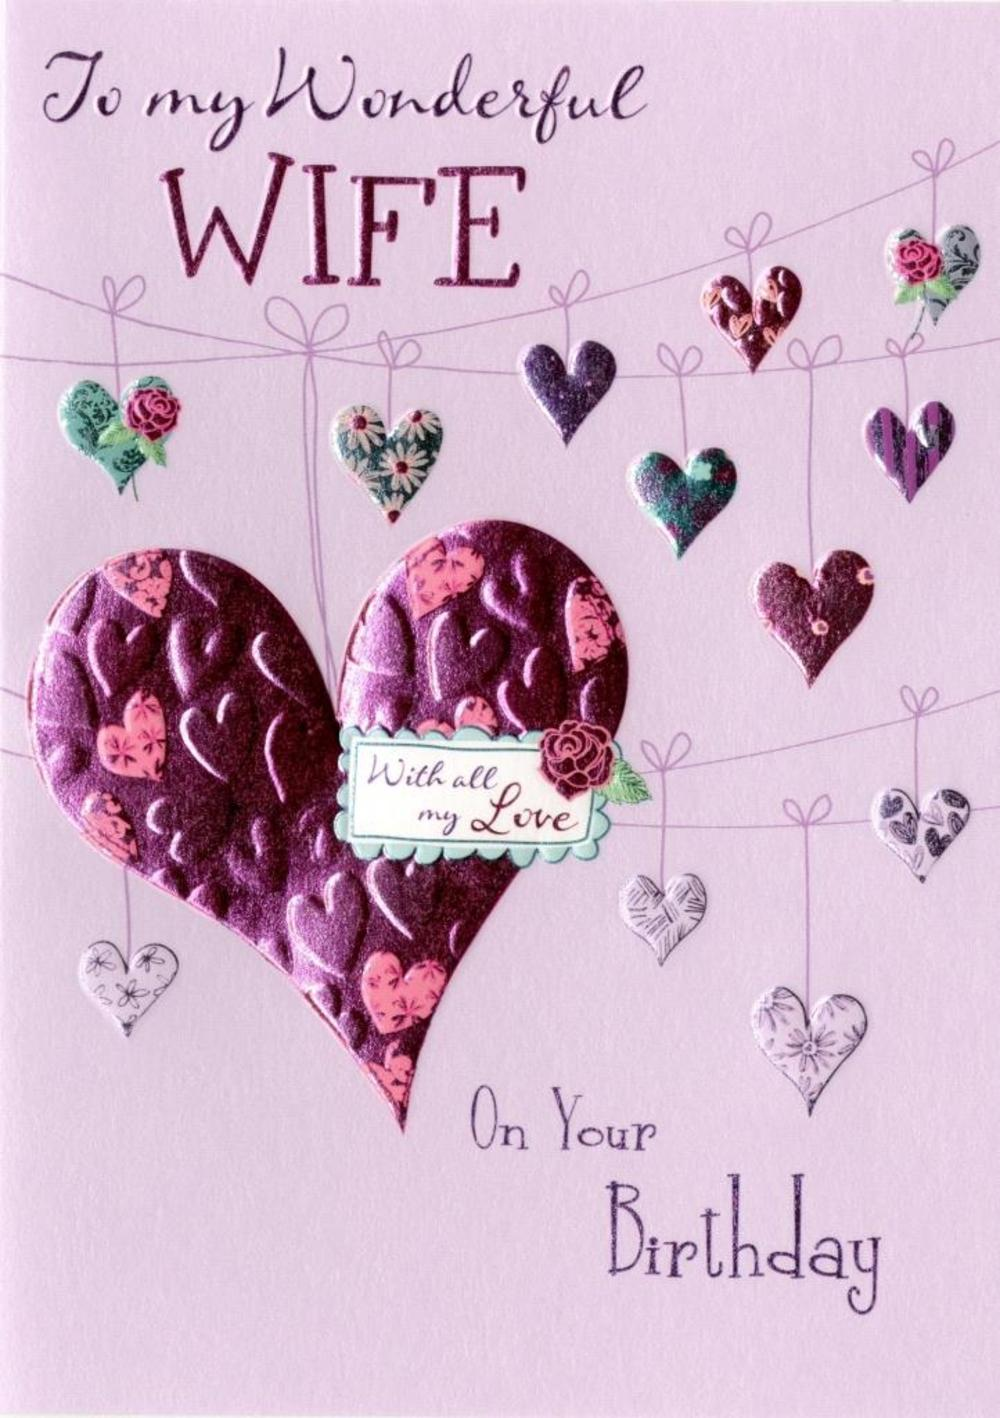 Wonderful wife birthday greeting card cards love kates wonderful wife birthday greeting card m4hsunfo